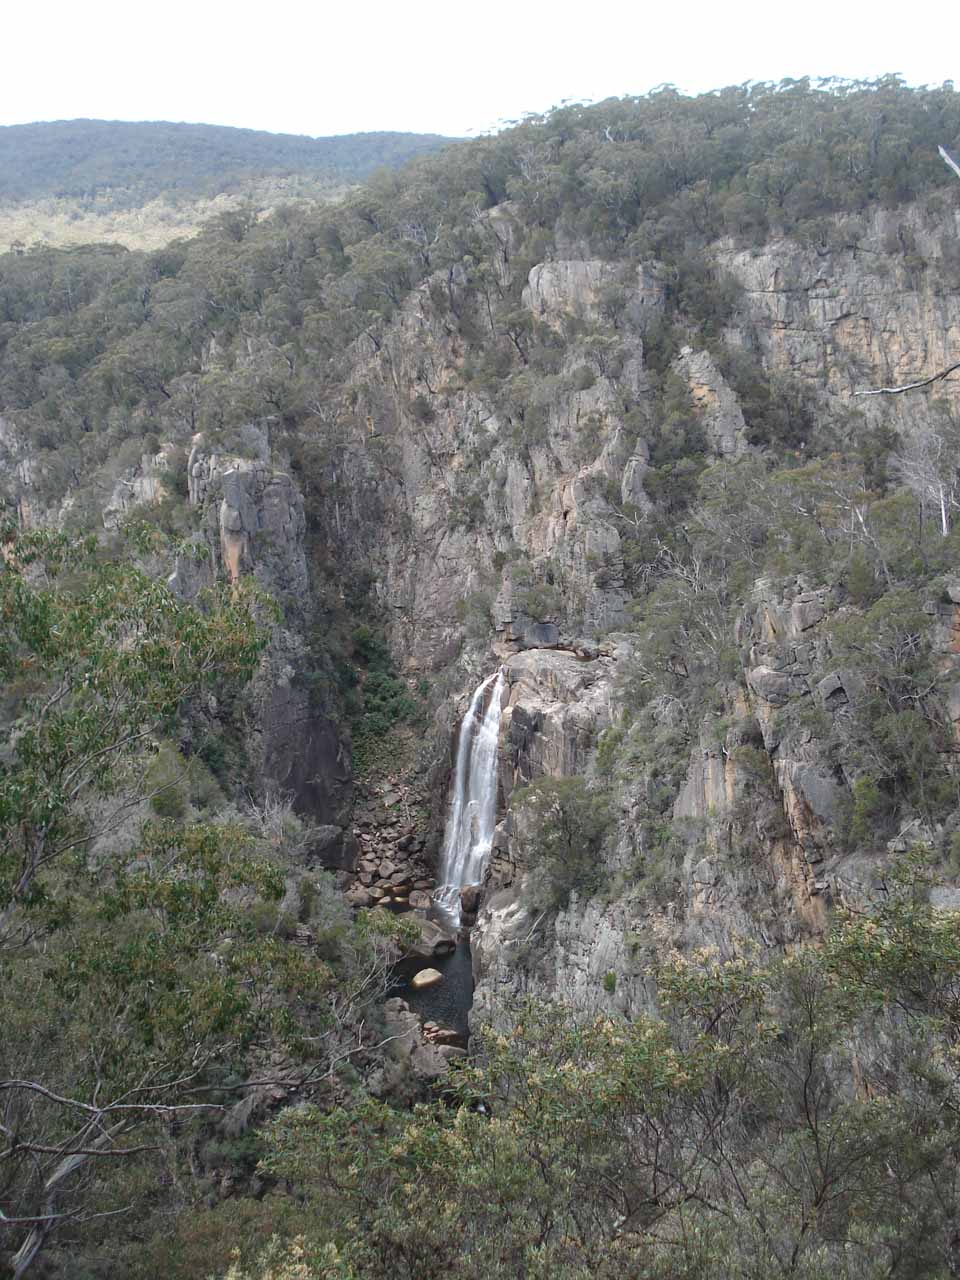 As we were approaching the lookout platform, we were already starting to see Tuross Falls